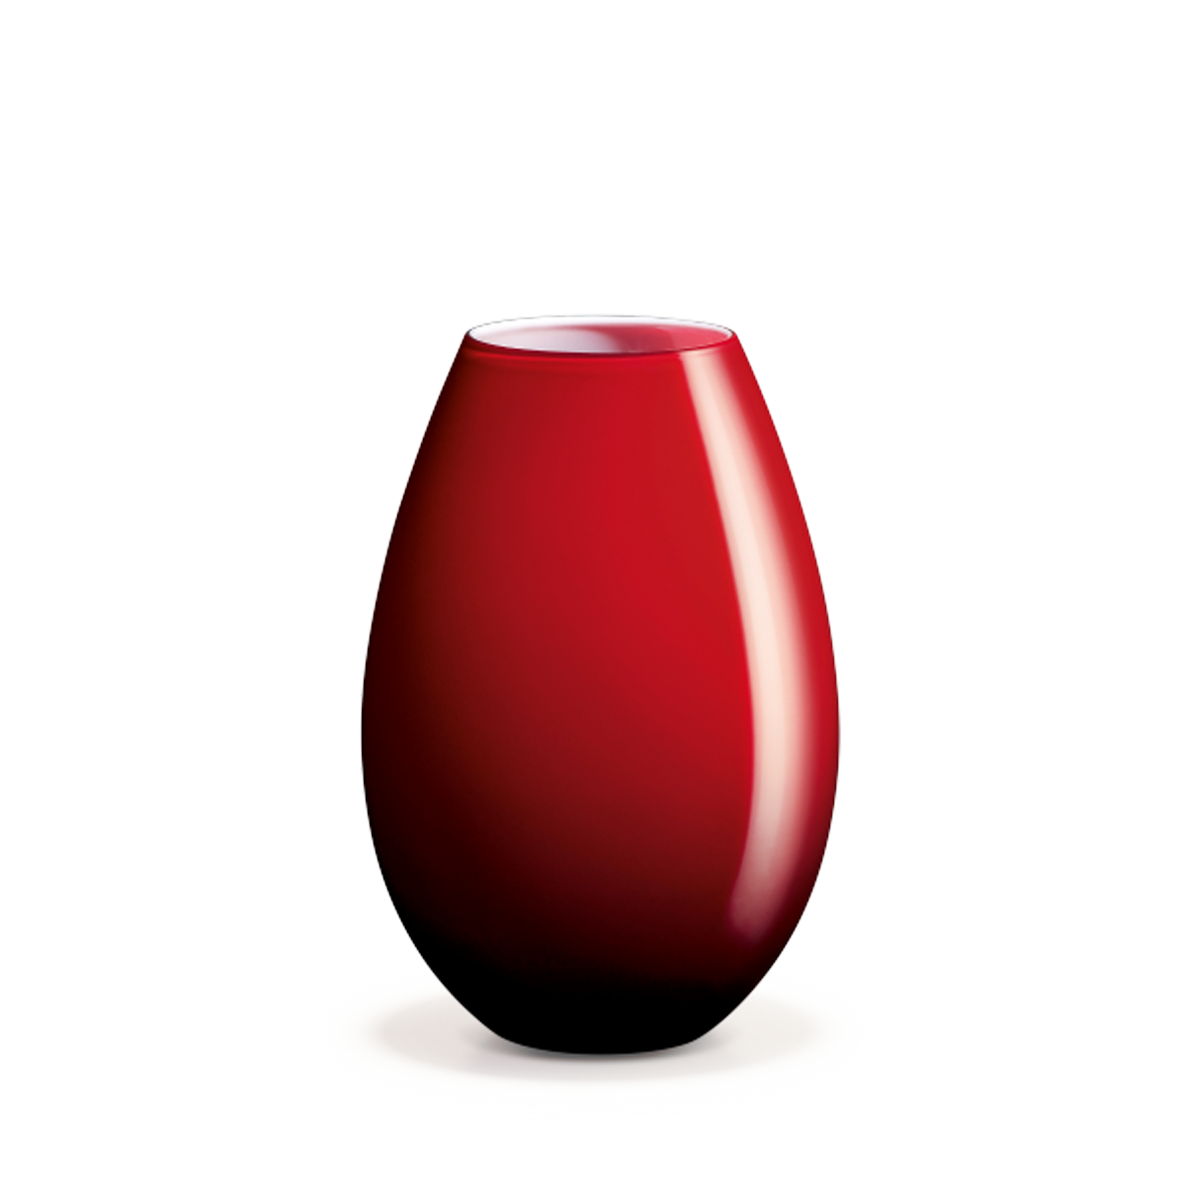 floor vase green with Cocoon Vase Red H 20 5 Cm on 20 Amazing And Stylish Vase Designs moreover Vase Uk Buy Your Vases And Bowls Online Today House Of Fraser furthermore Tyre Floor L s together with Cocoon Vase Red H 20 5 Cm in addition Living Room Curtain Ideas.